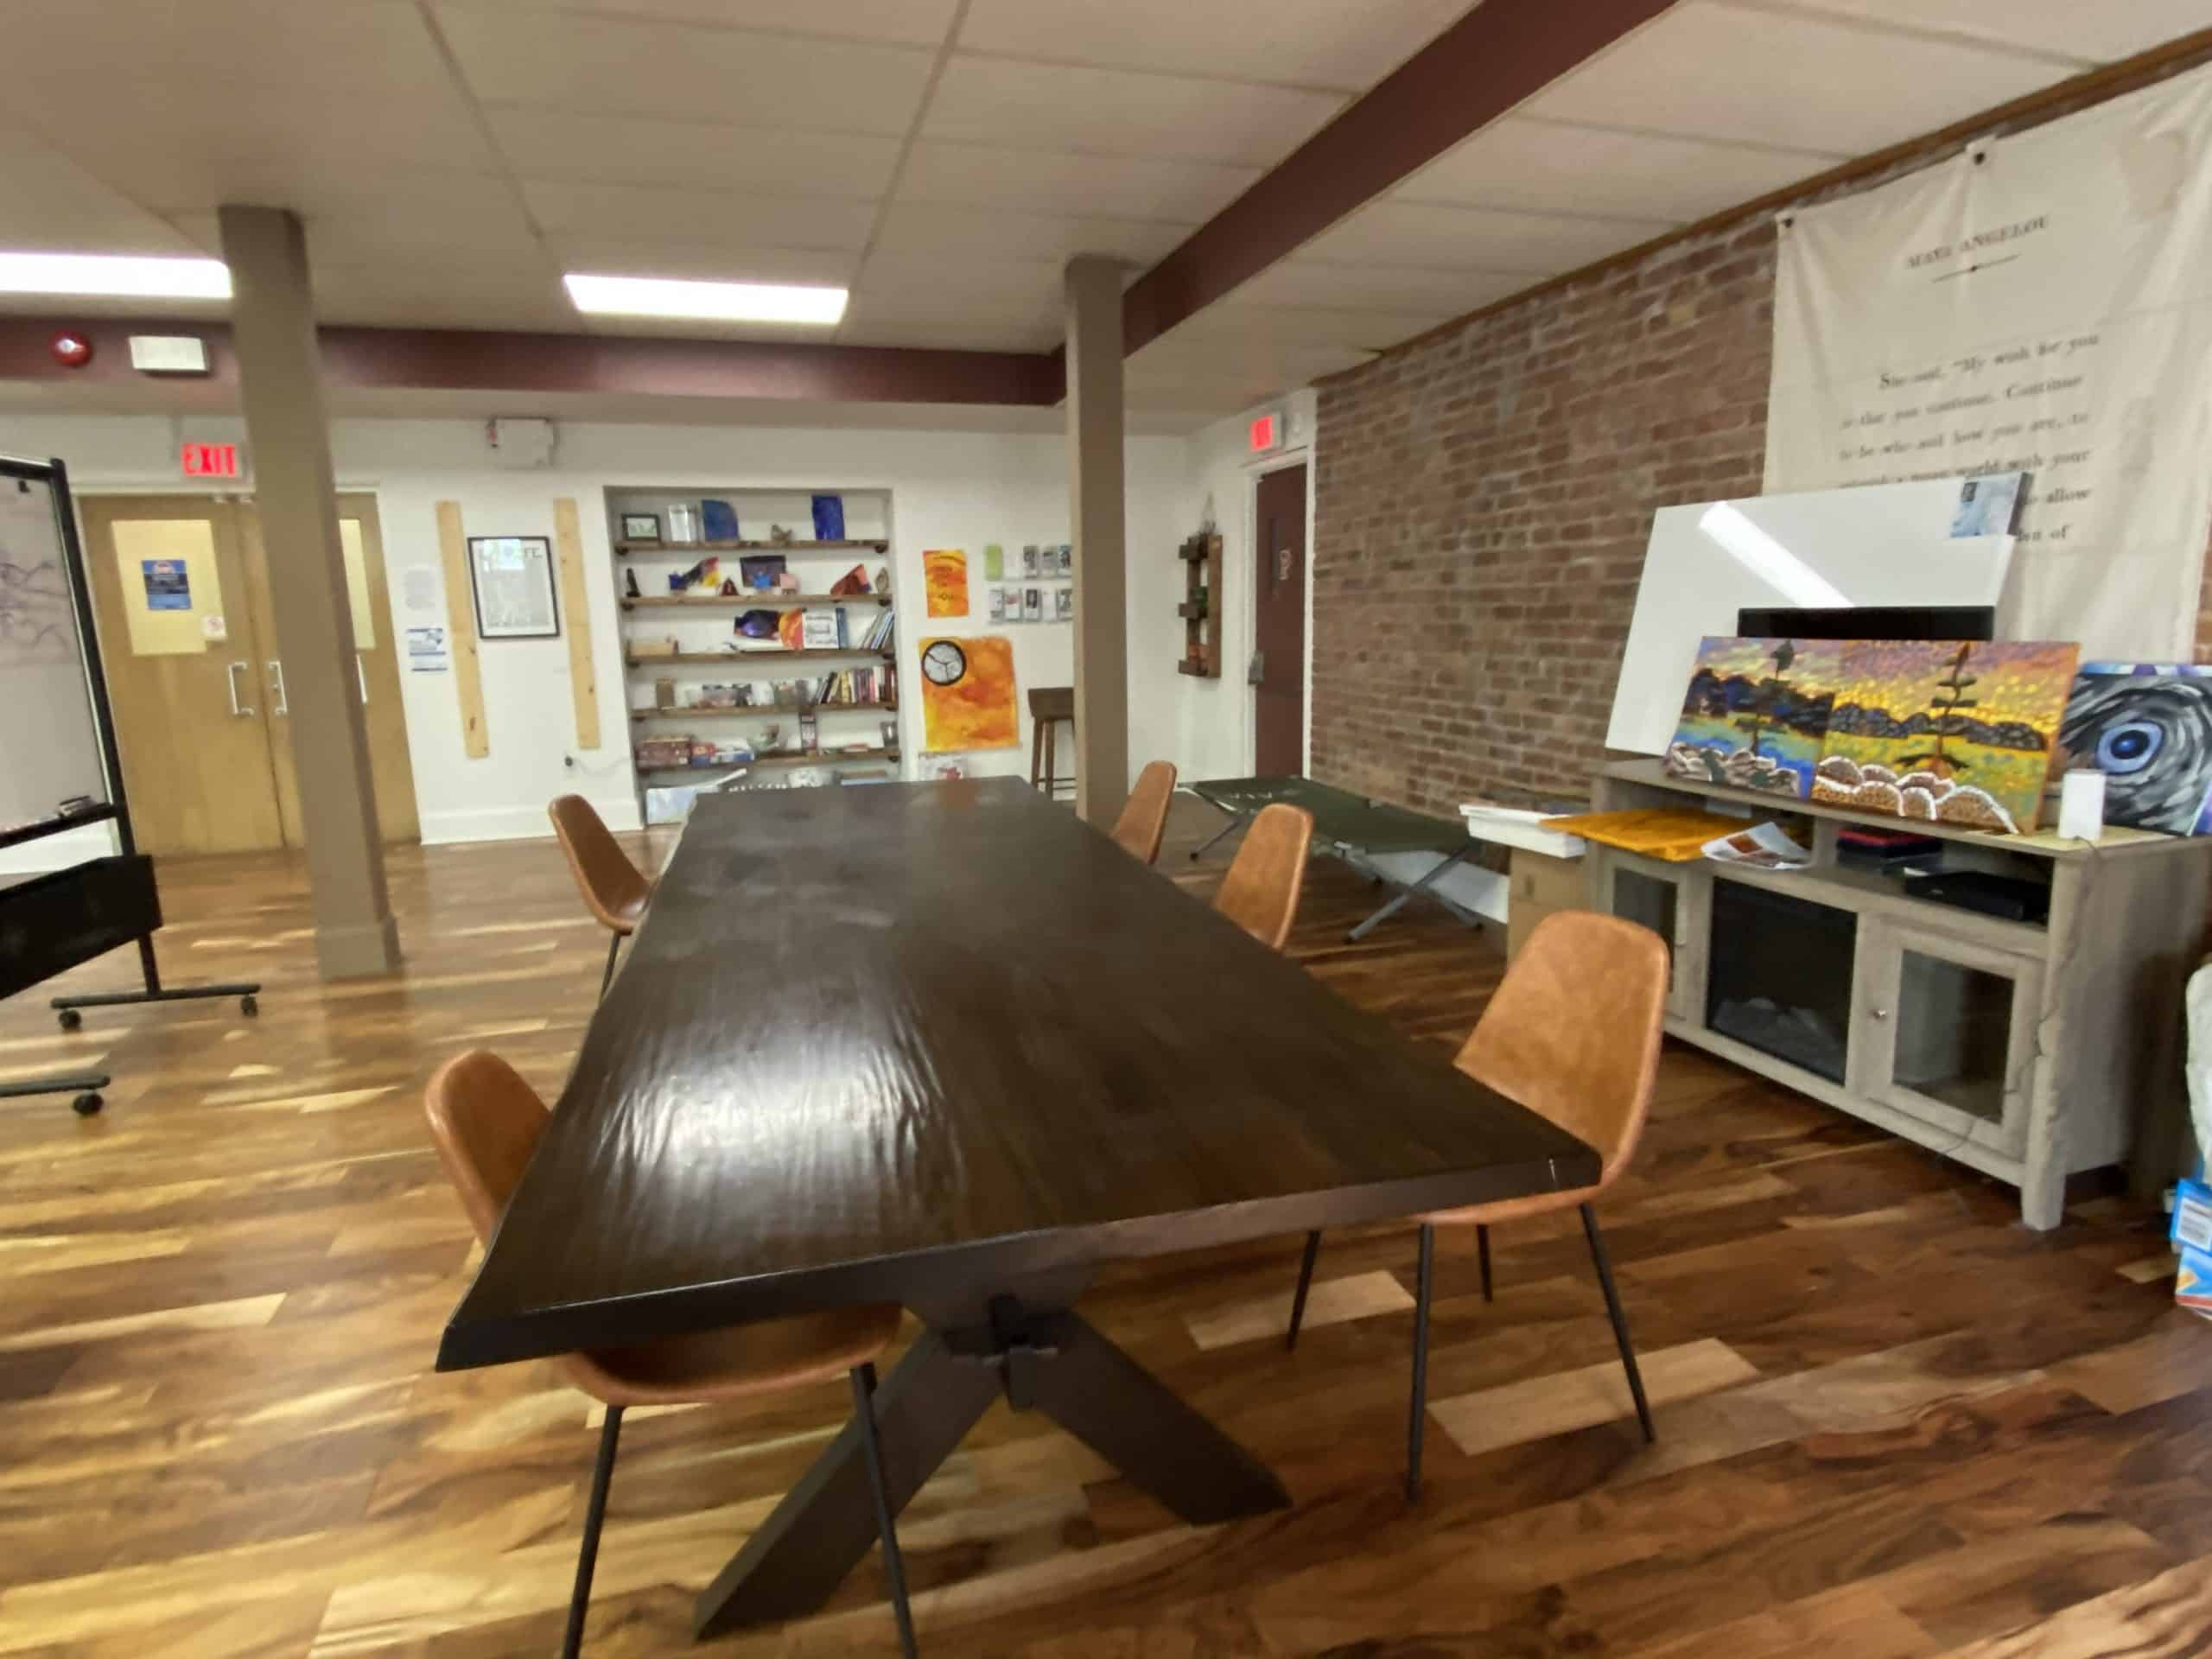 interior of STEP facility with conference table